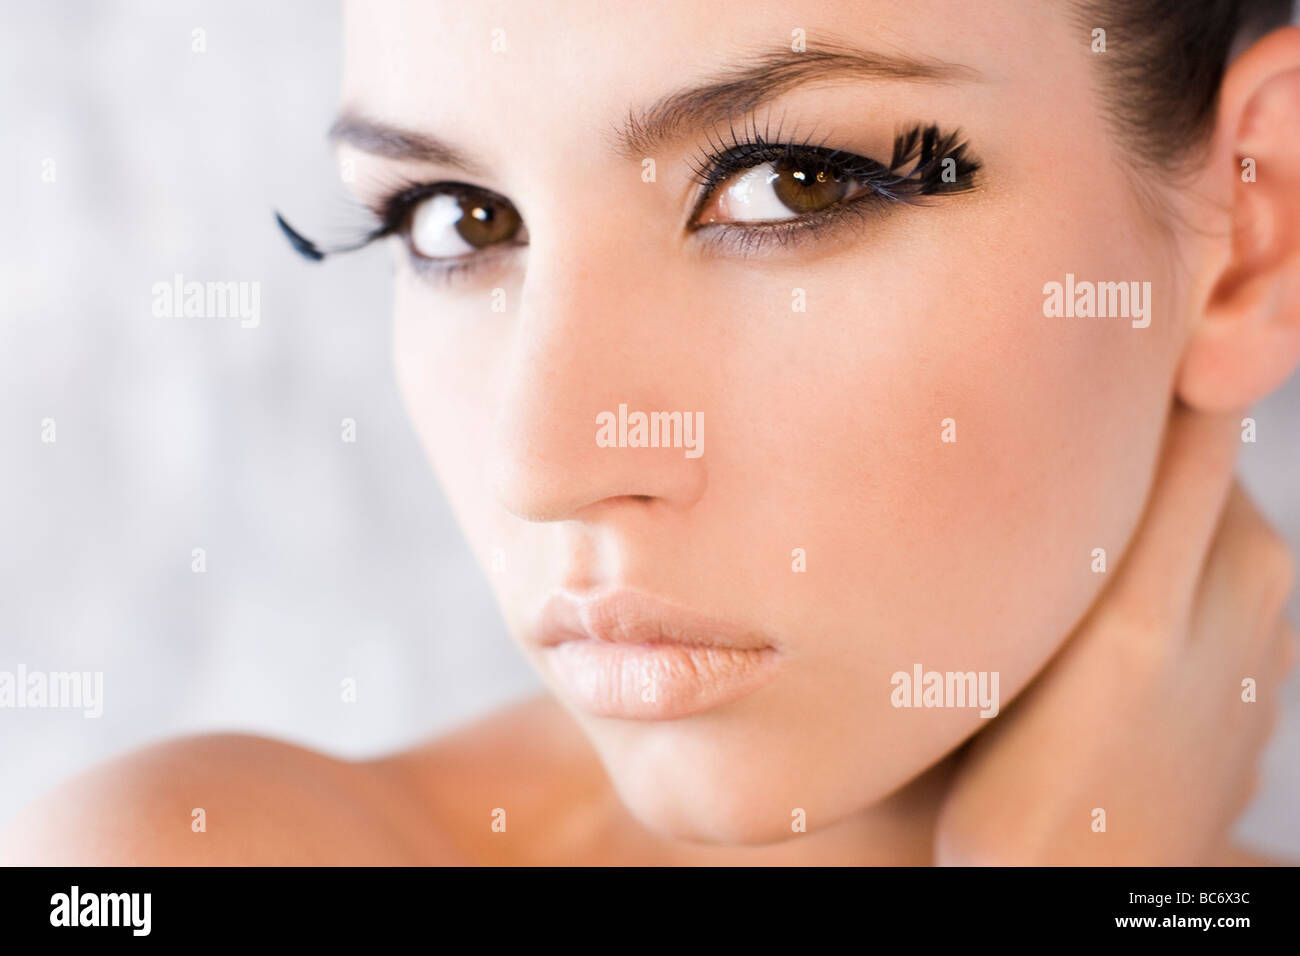 beauty woman with fake lashes - Stock Image